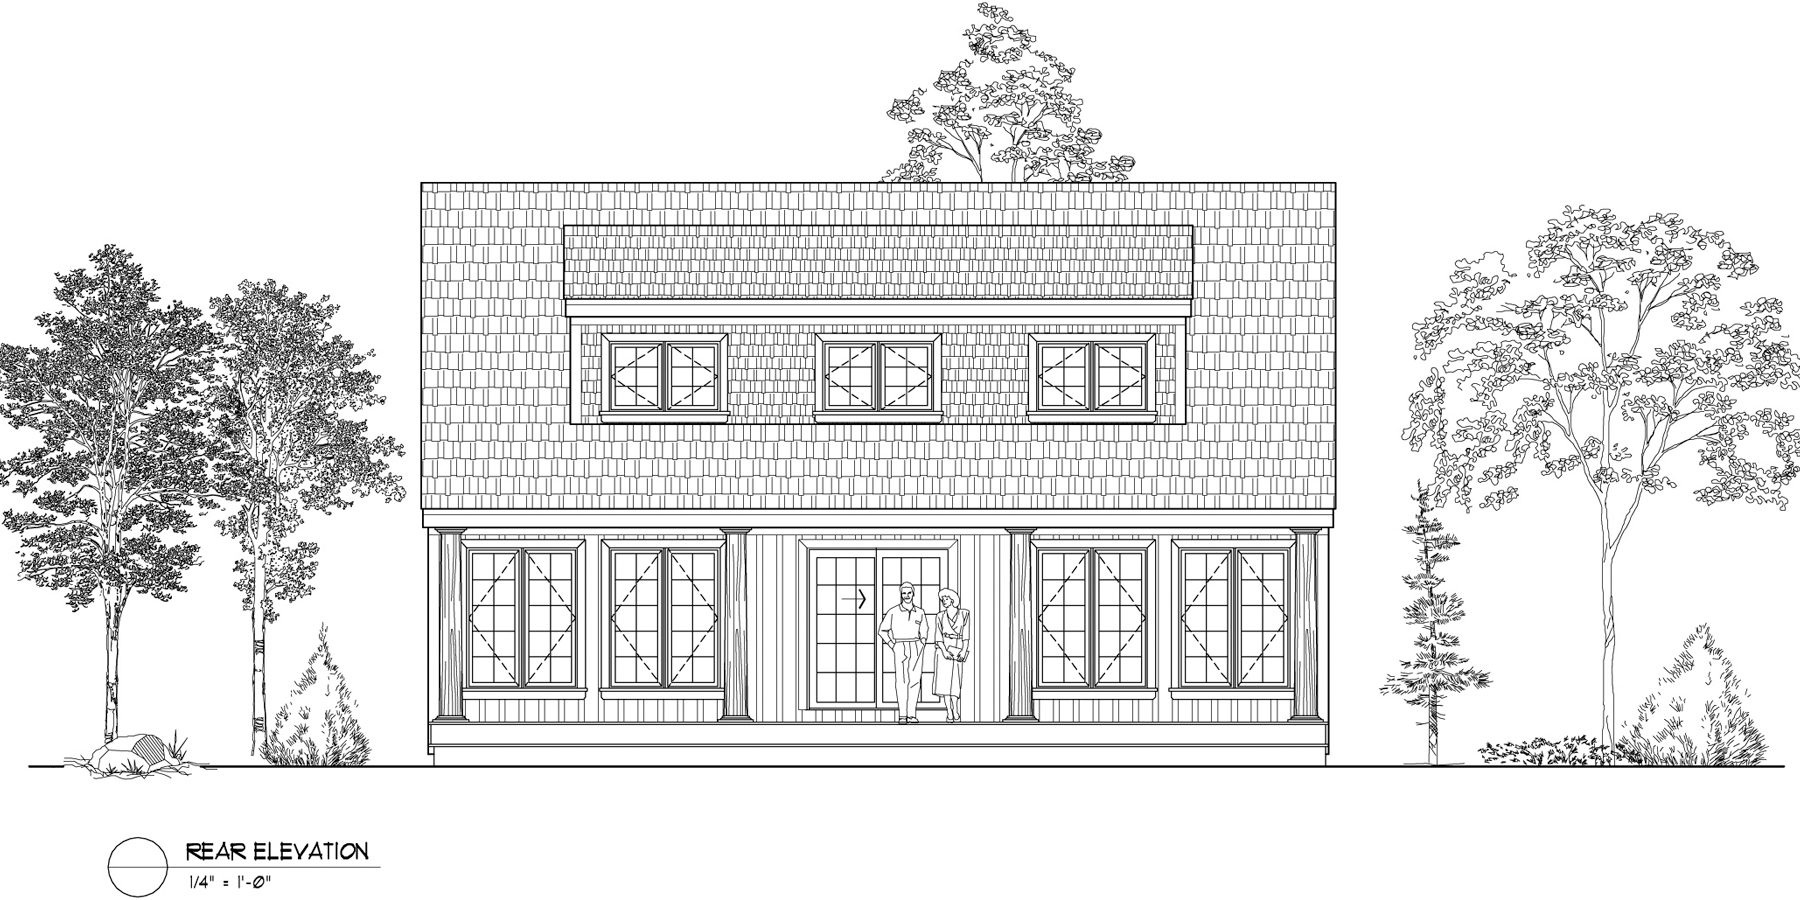 Normerica Timber Frames, House Plan, The Routt 3419, Rear Elevation